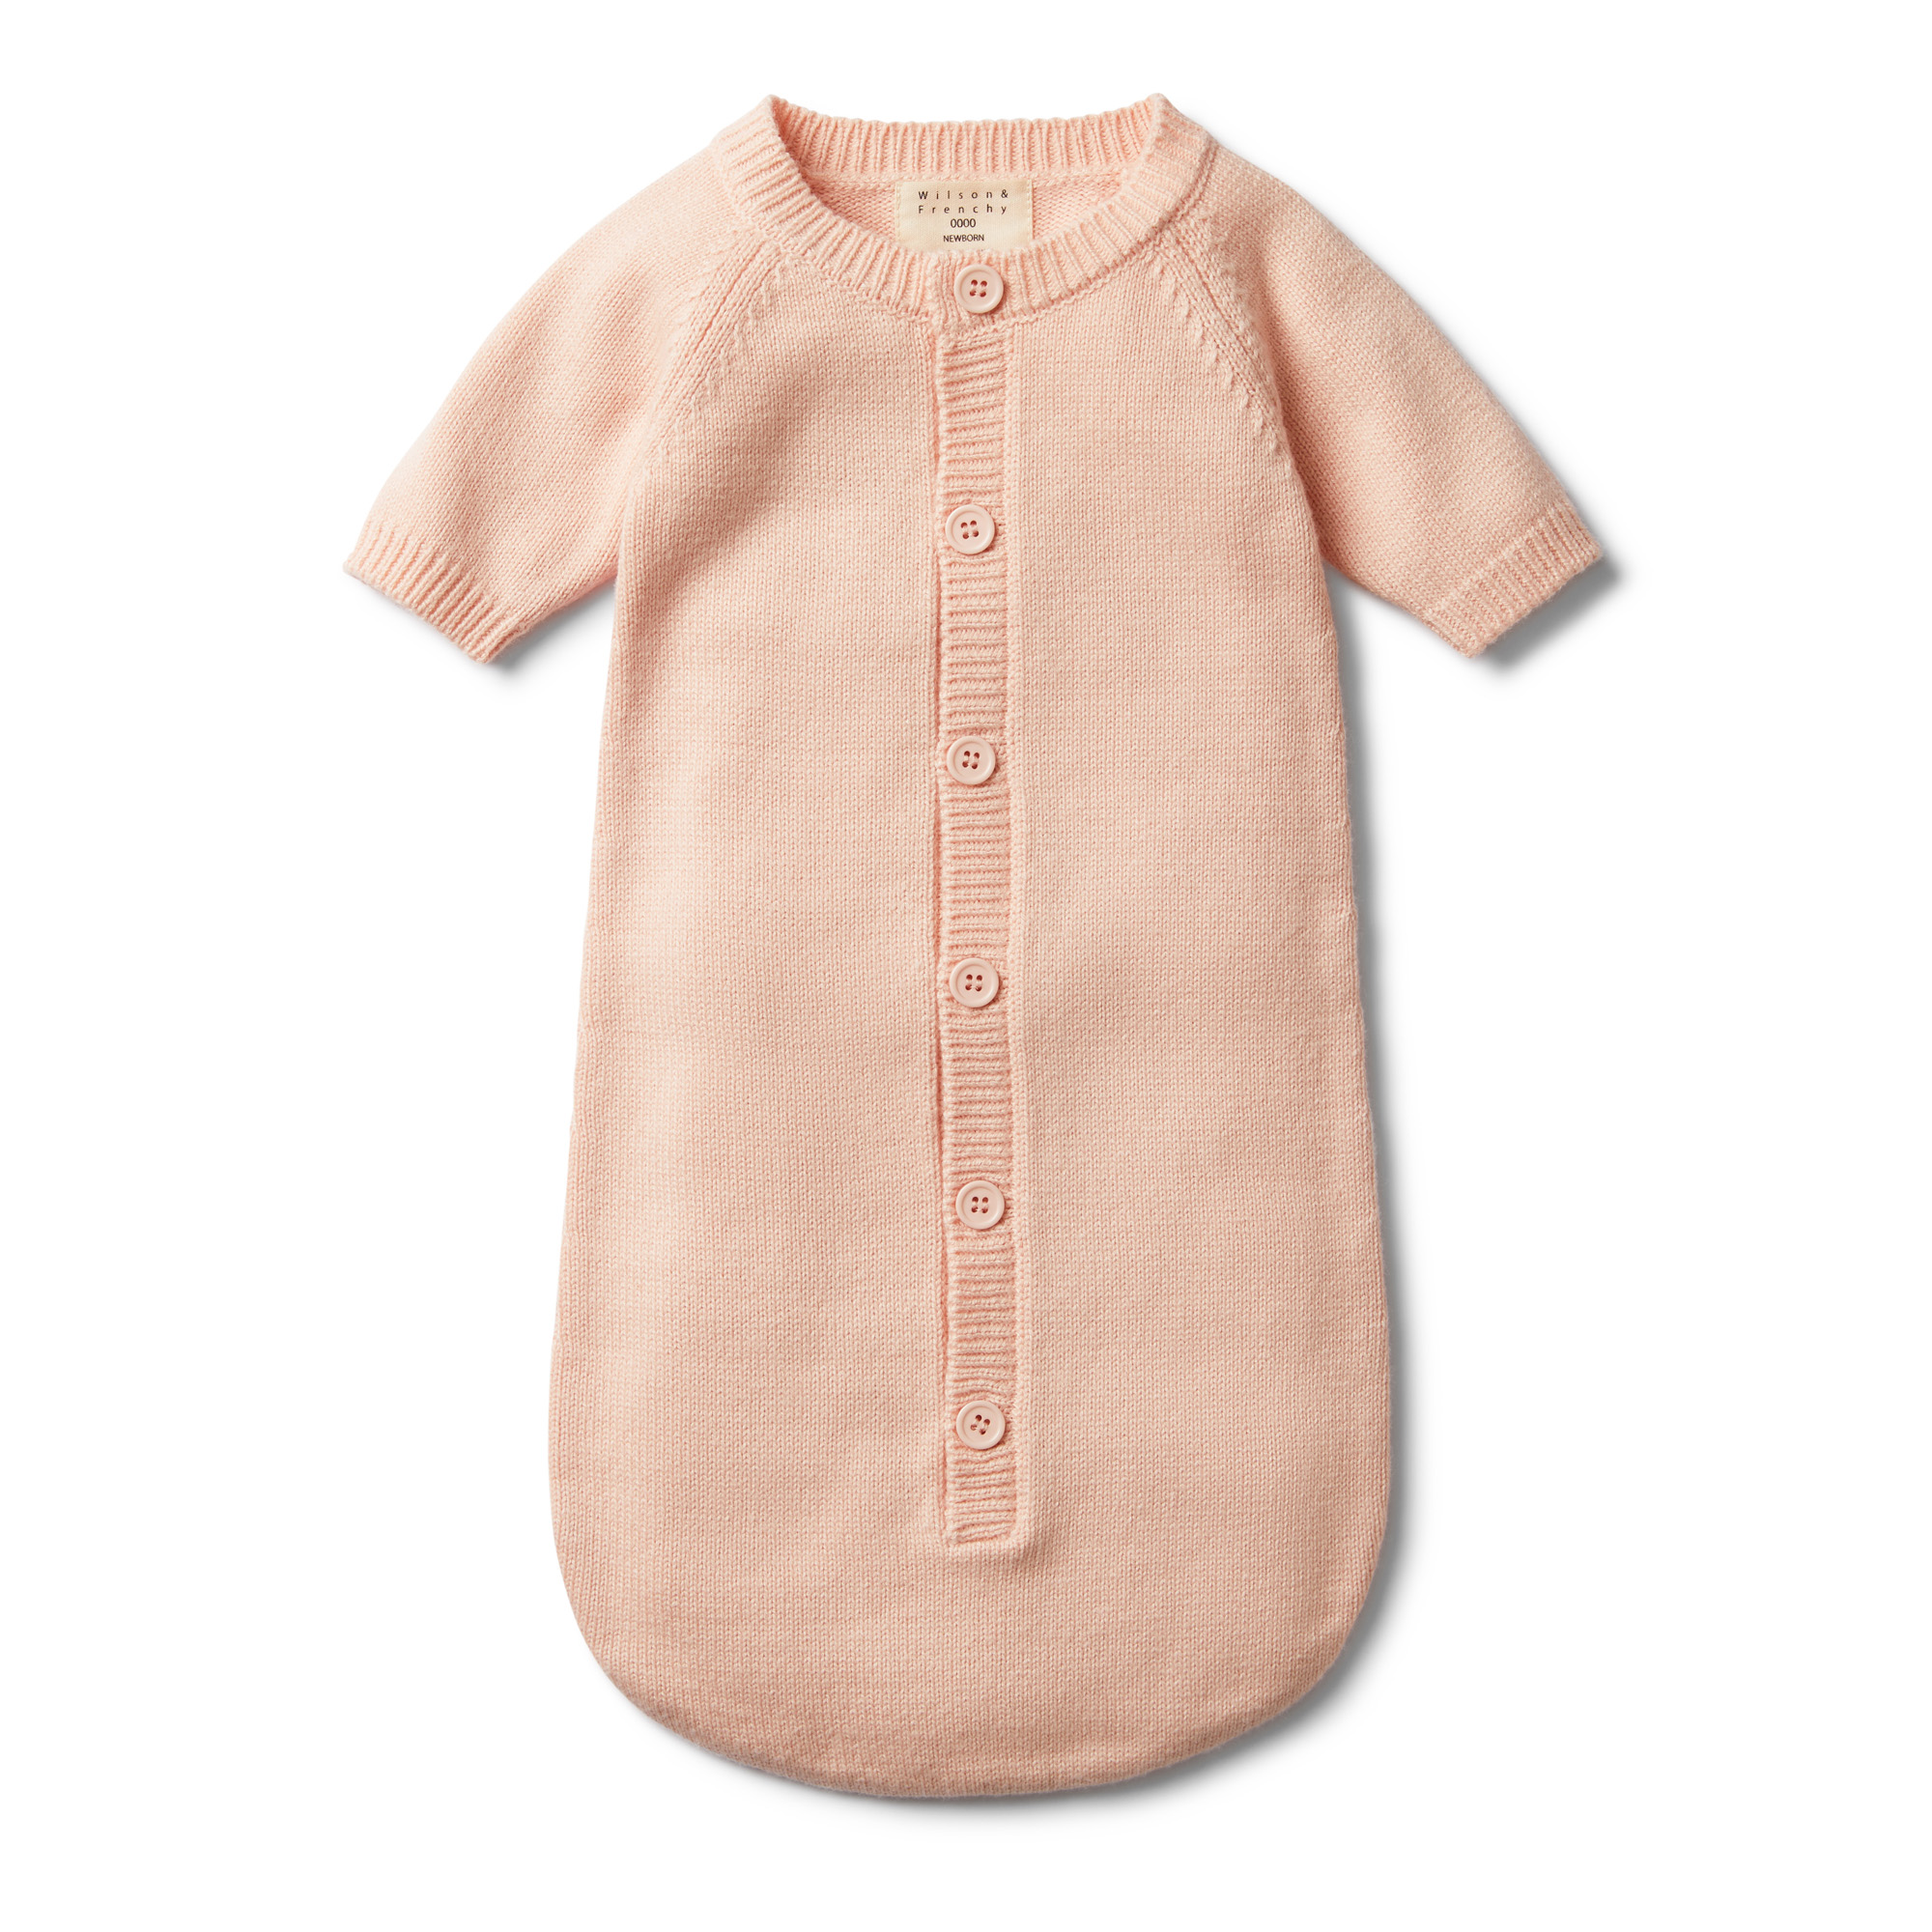 Wilson & Frenchy Peachy Pink Cocoon Sleeper Baby Clothes